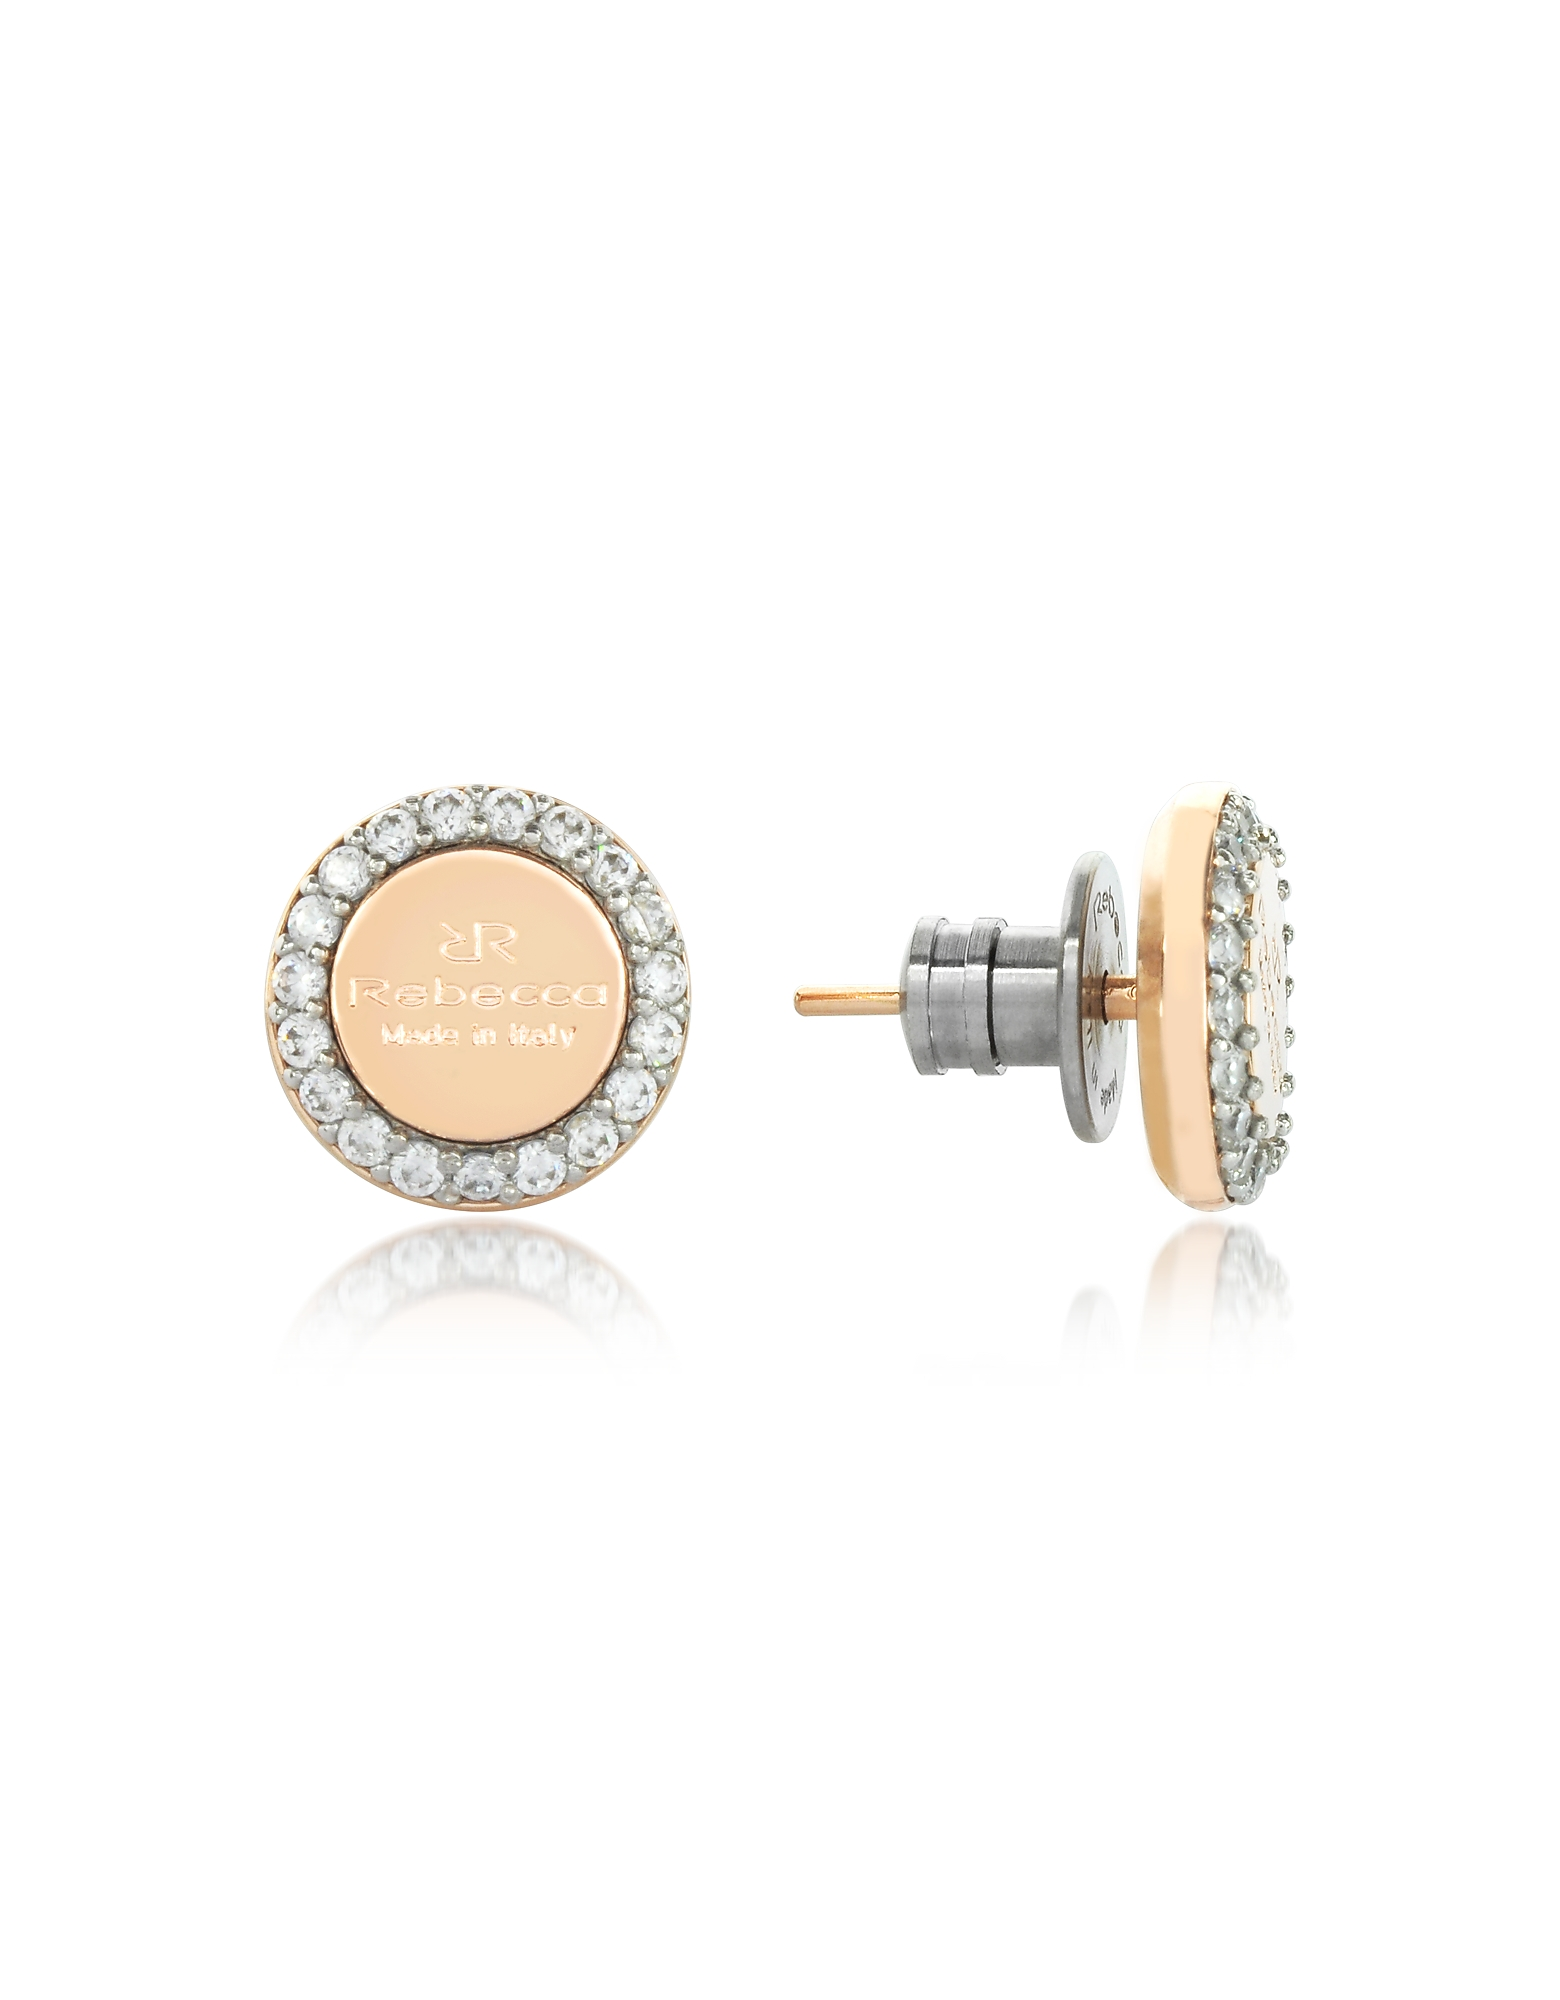 Boulevard Stone Yellow Gold Over Bronze Stud Earrings w/Stones